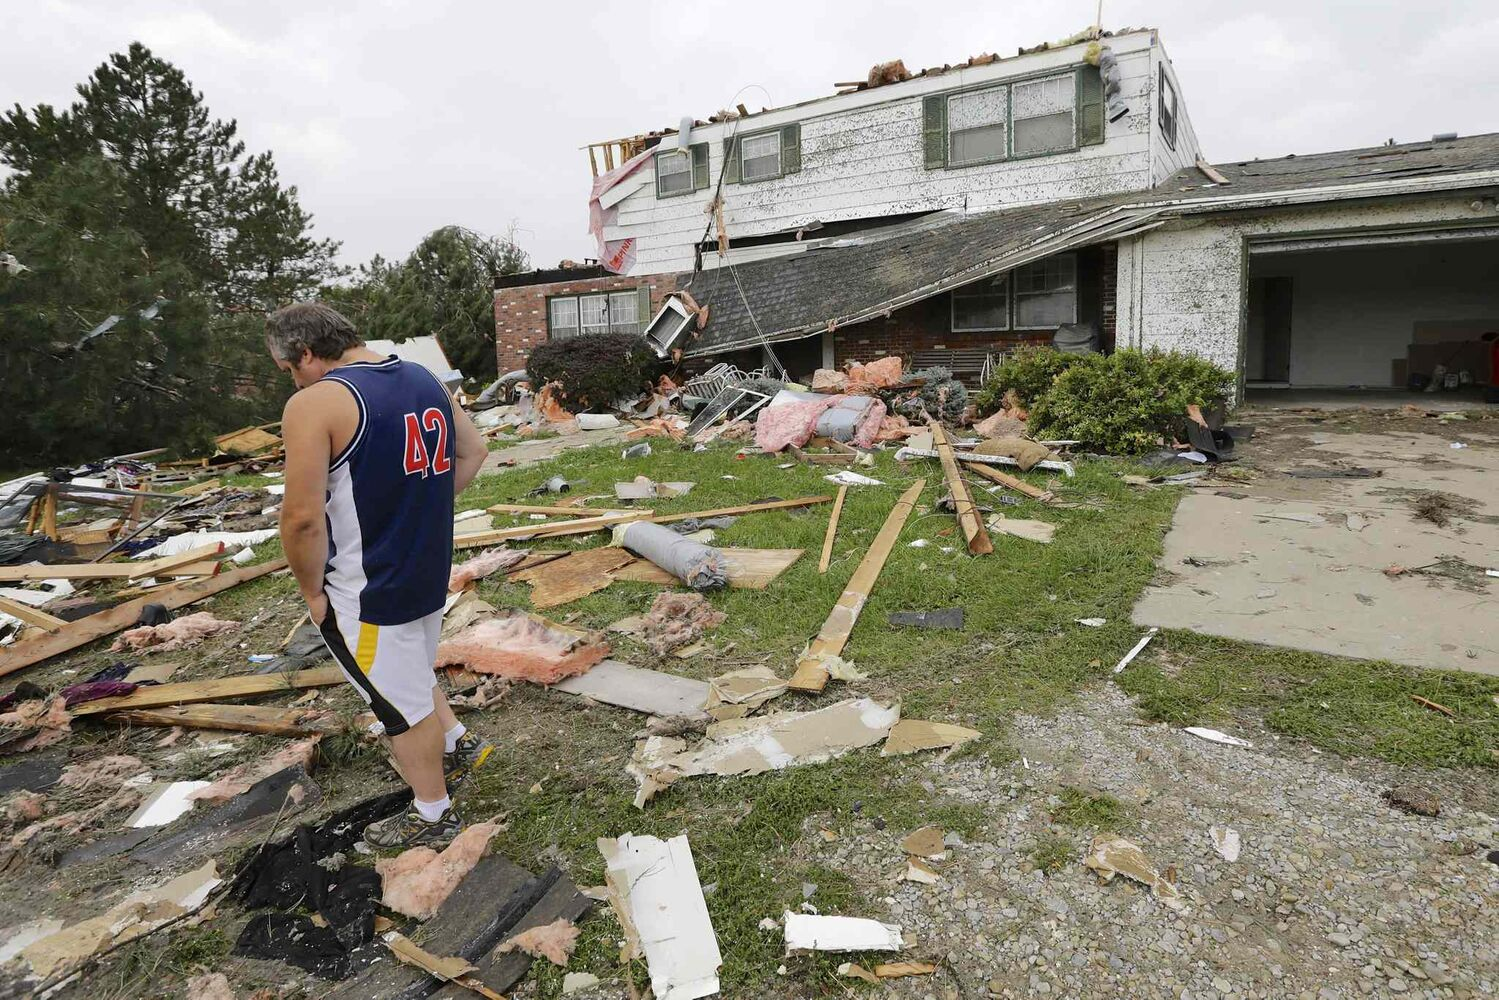 Travis Randall walks through the debris-strewn yard of his parent's home in Hickman, Neb., Friday, Oct. 4, 2013, after it was struck by a tornado. (Nati Harnik / The Associated Press)